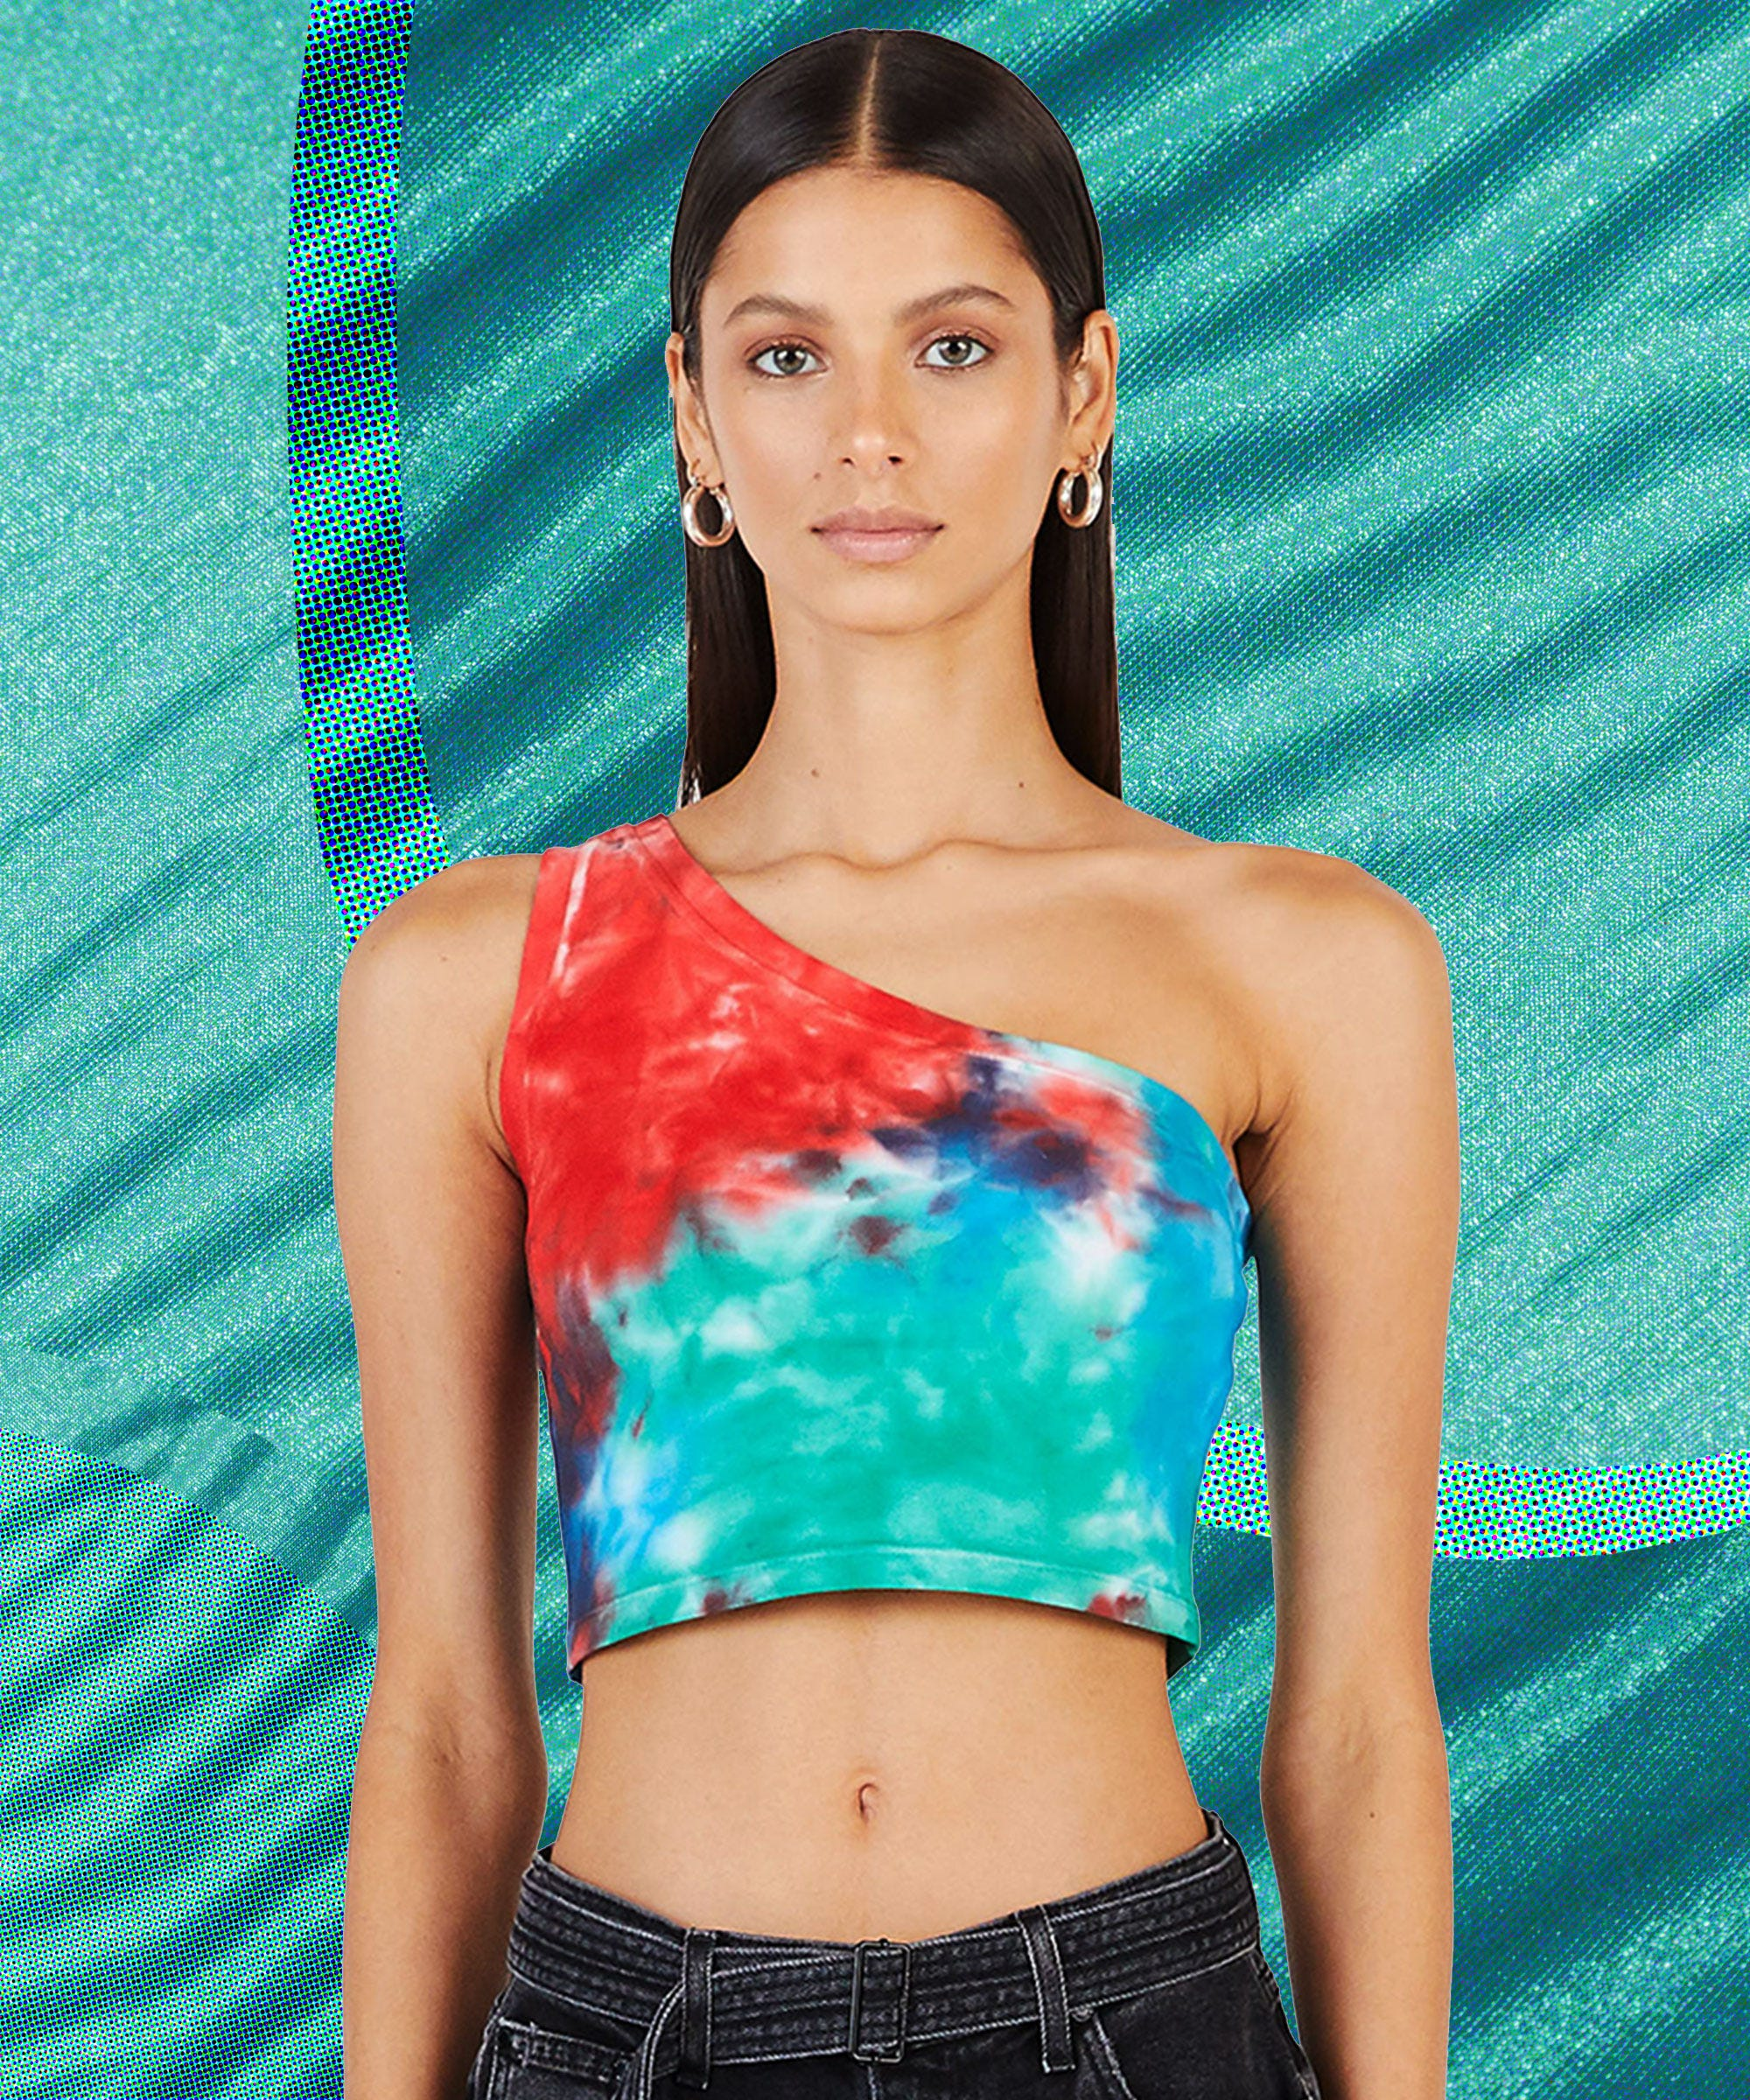 f785d4ed6921 Summer Fashion Trends 2019 Tie Dye To Florals